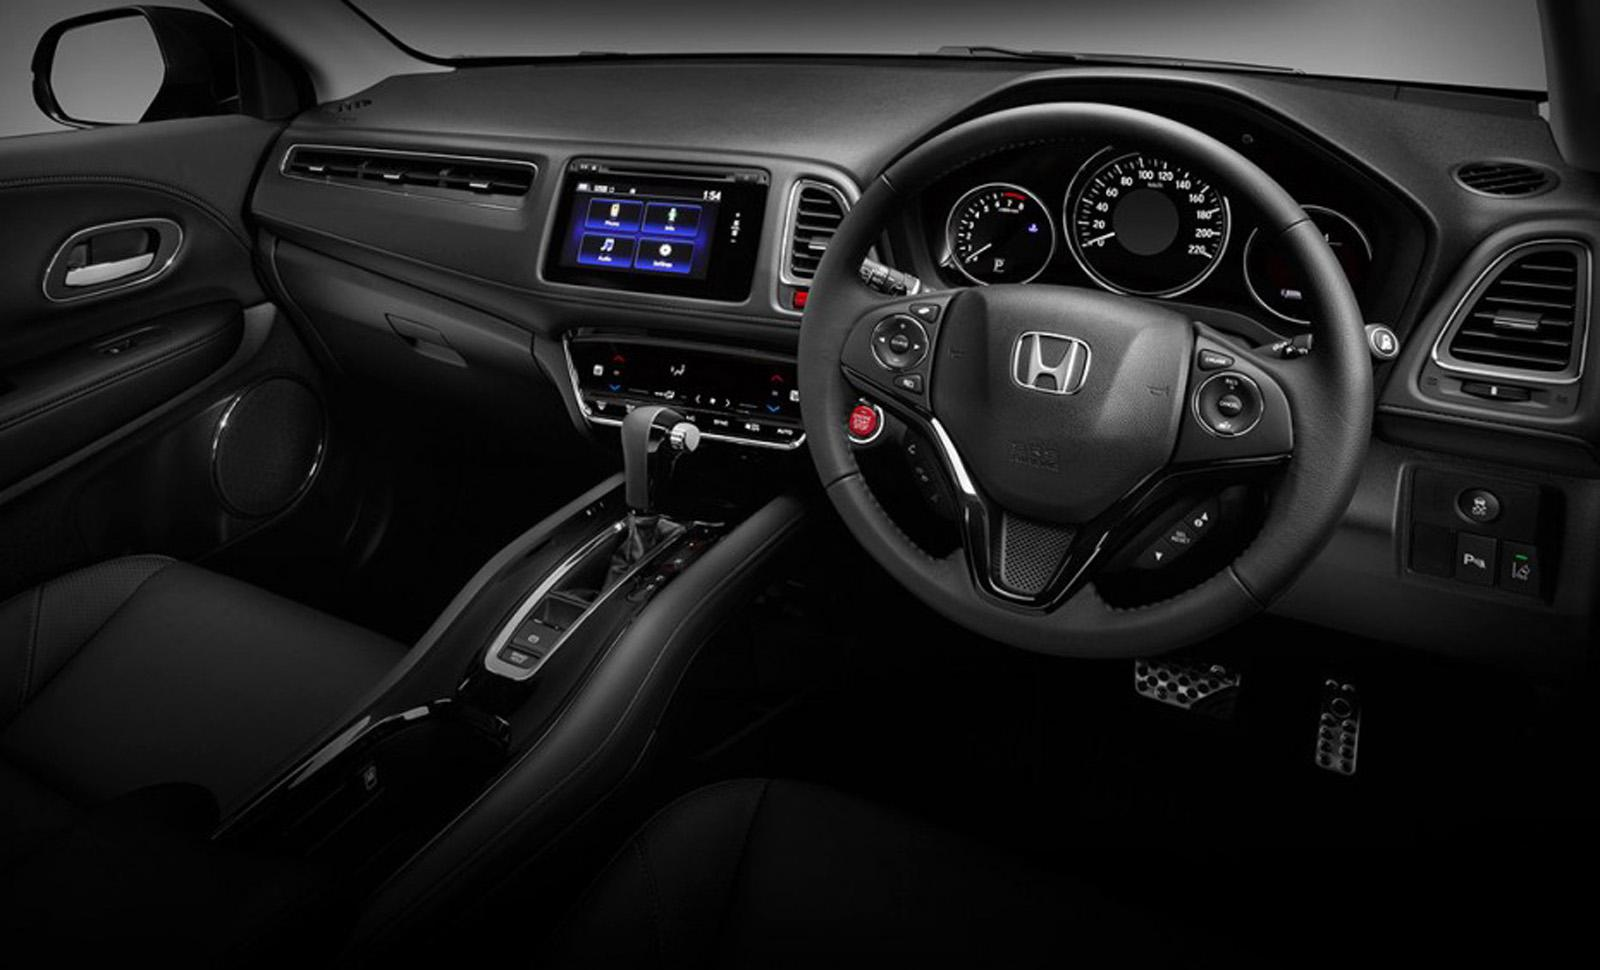 honda civic 2016 price in pakistan 2017 2018 best cars reviews. Black Bedroom Furniture Sets. Home Design Ideas